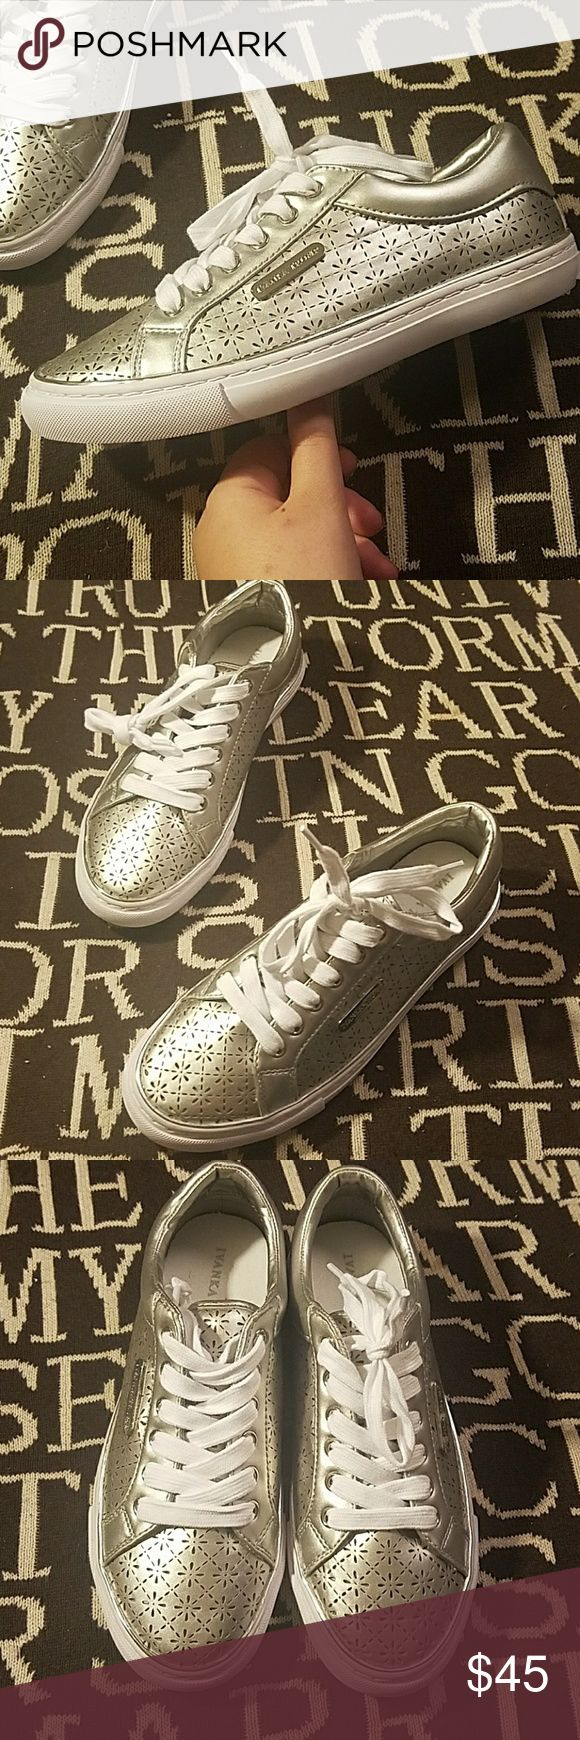 New silver cutout chic sneakers eyelet Ivanka trum Brand new without box women's beautiful silver eyelet cut-out sneakers with white laces and white accents Ivanka Trump sneaker shoes these are heavy there are very nice quality they are somewhat metallic but not overwhelming I have size 6 and size 9 women's available super cute especially for the spring these or not so much made for running but more for casual wear send me an offer I'm pretty flexible but no trades Ivanka Trump Shoes…